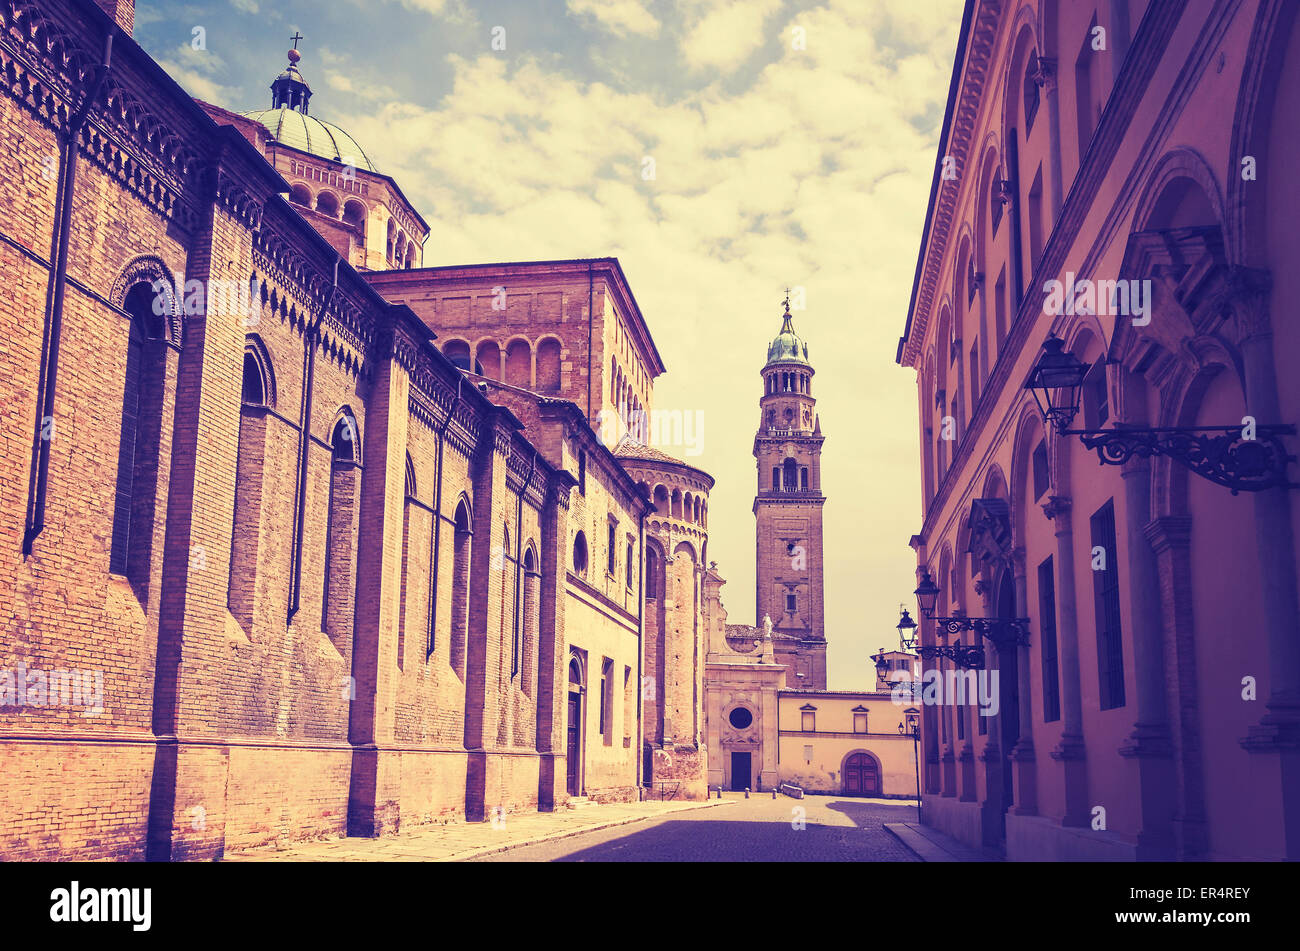 Vintage retro filtered picture of Parma old town, Italy. - Stock Image